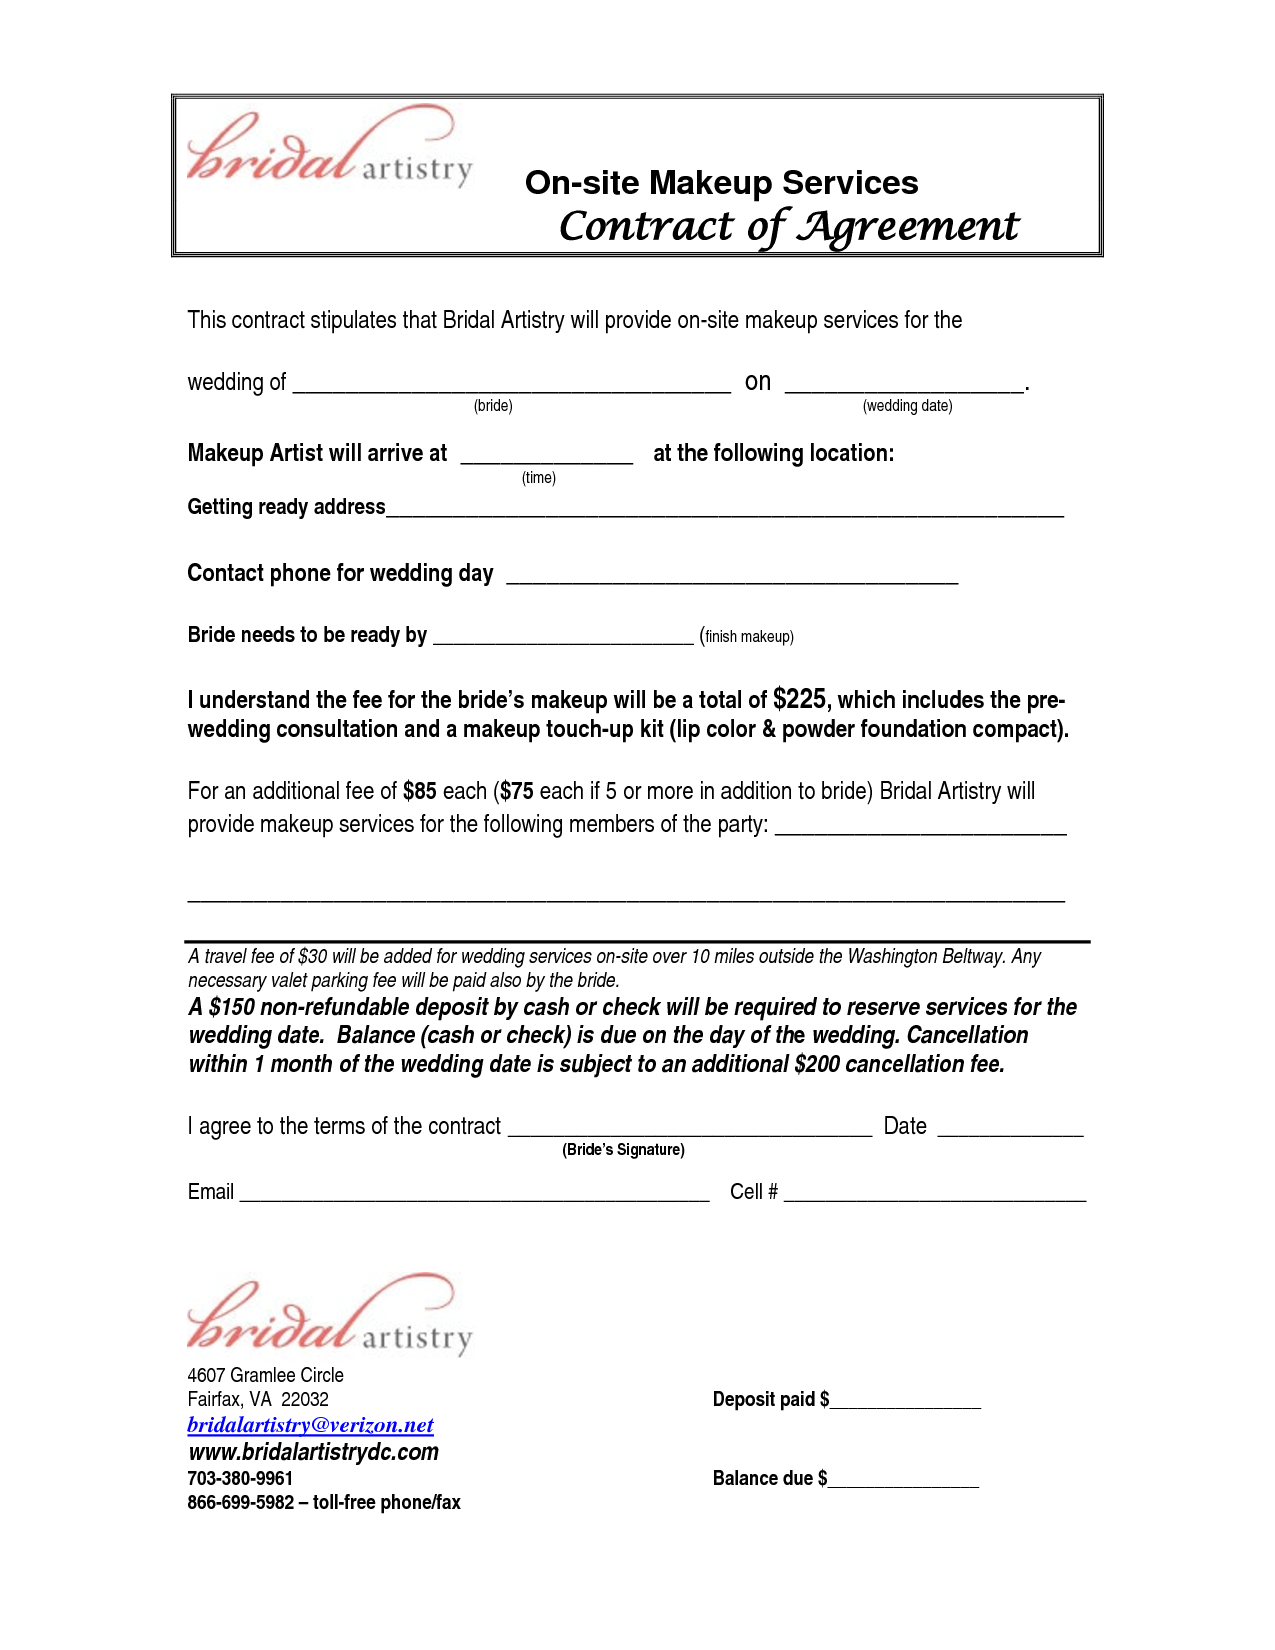 bridalhaircotract site makeup services contract agreement this stipulates